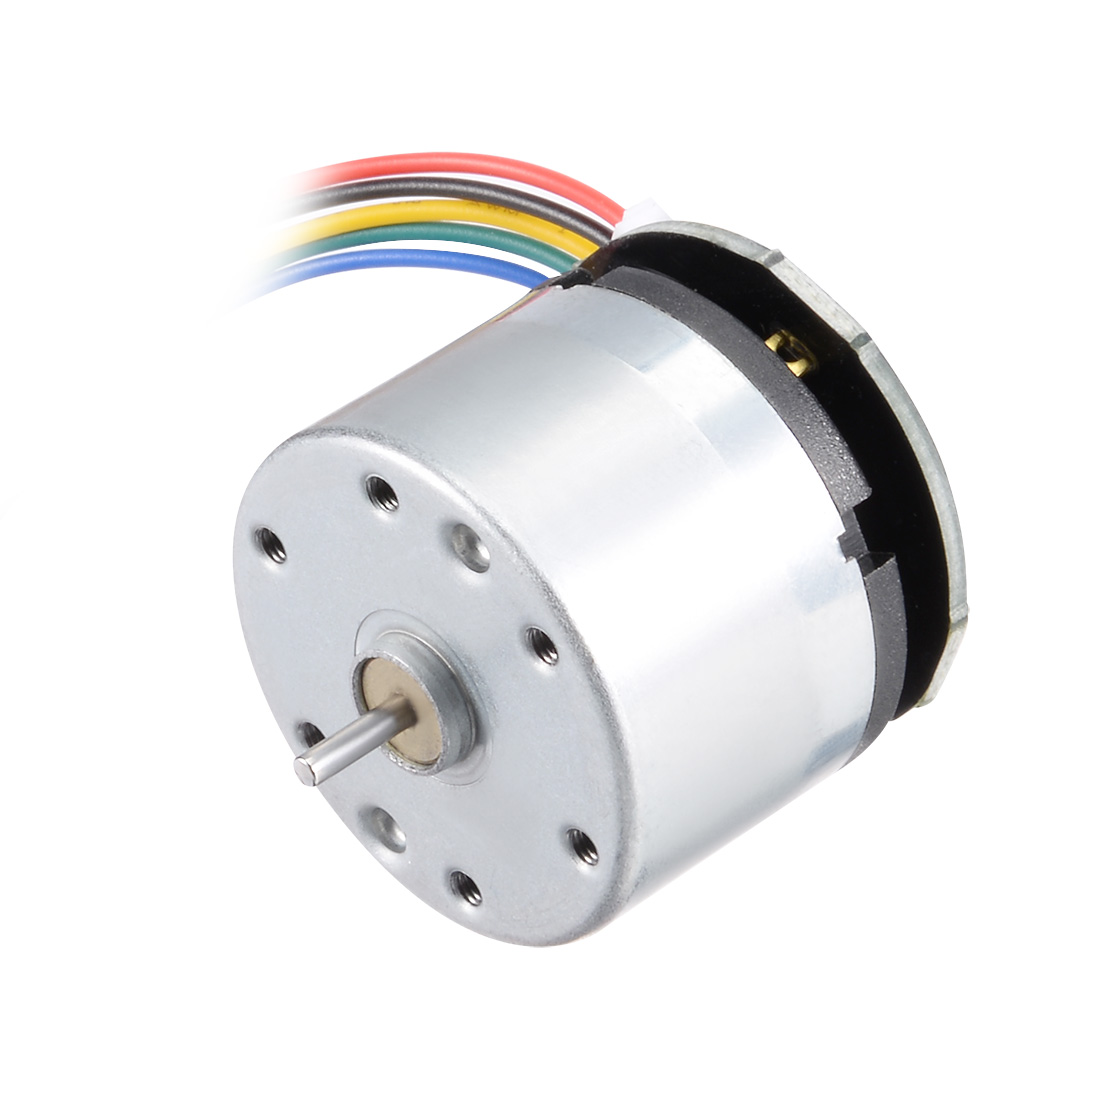 Micro Motor DC 12V 10000RPM 6 Wire High Speed Encoder Motor for DIY Toy Cars